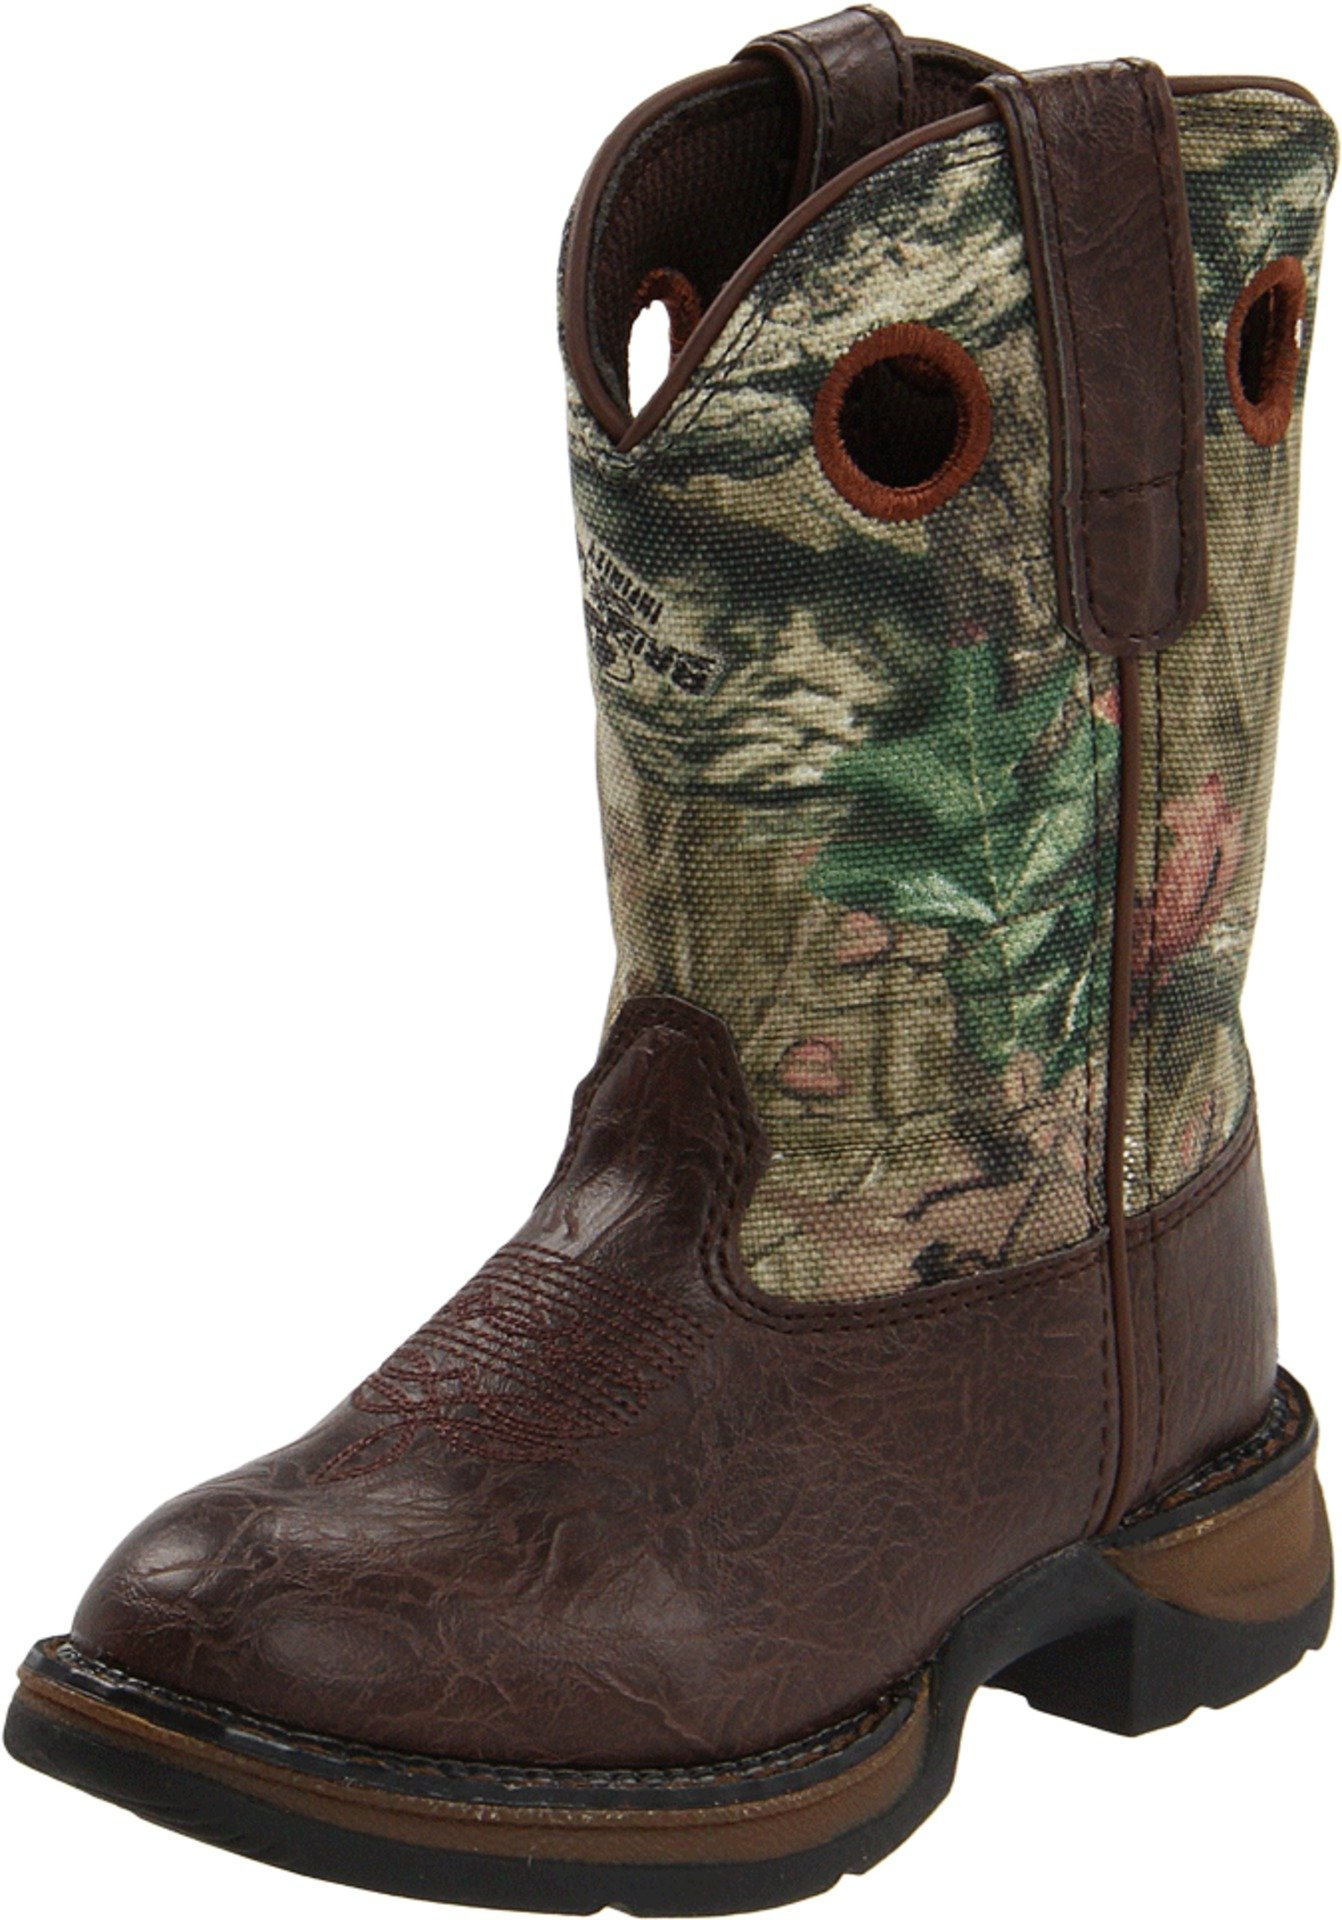 Durango Kids BT250 Lil' 8 Inch Camo,Brown/Mobu Infinity,10 M US Toddler